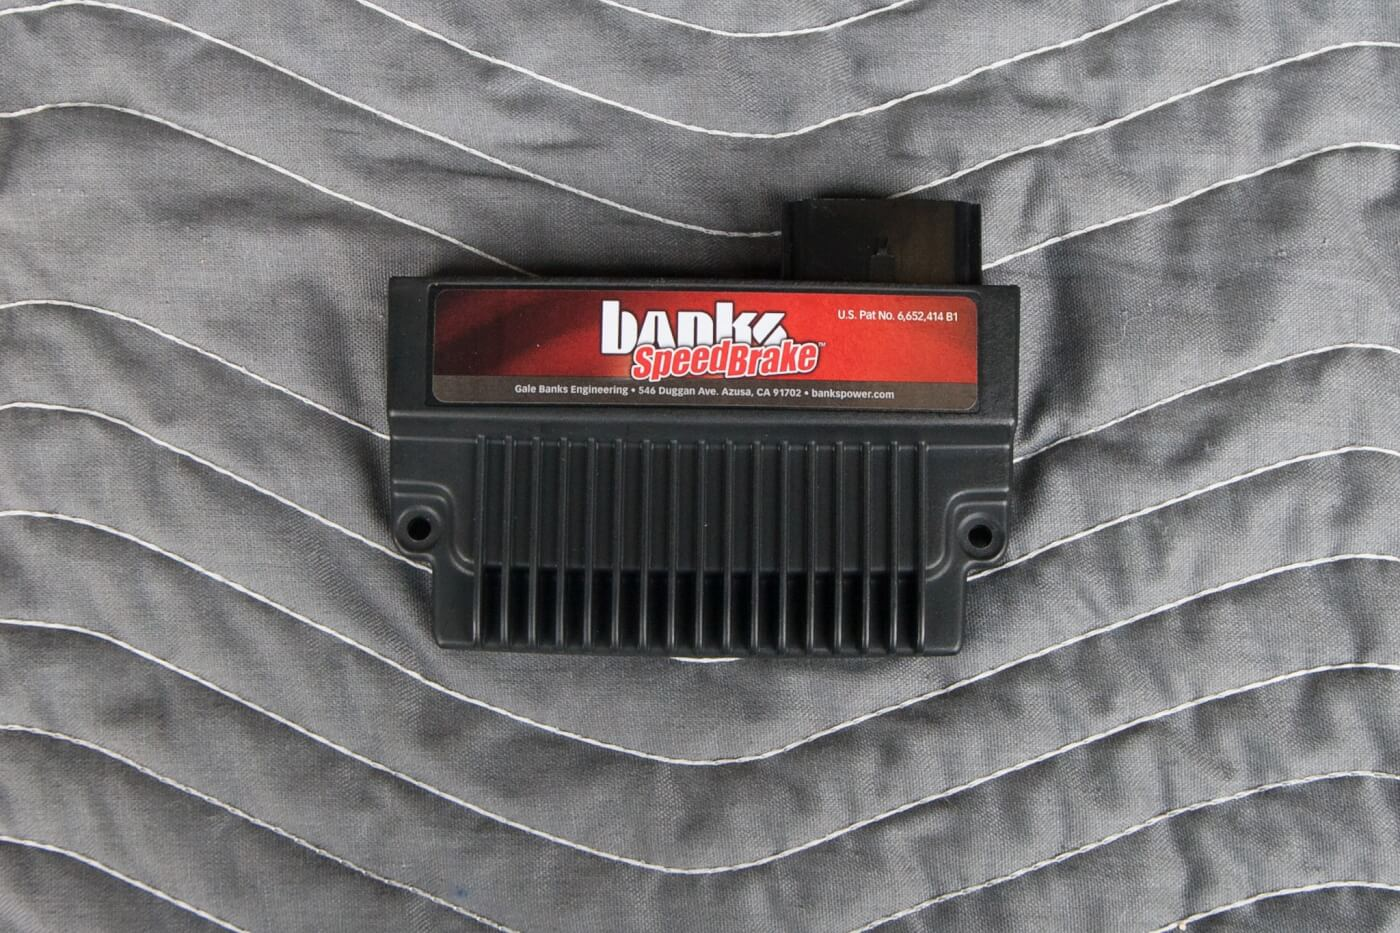 2. Here's the brains behind the SpeedBrake, and it mounts safely under the hood. The SpeedBrake can be used as a freestanding unit or for even more control, it can be connected to the Banks iQ tuner.